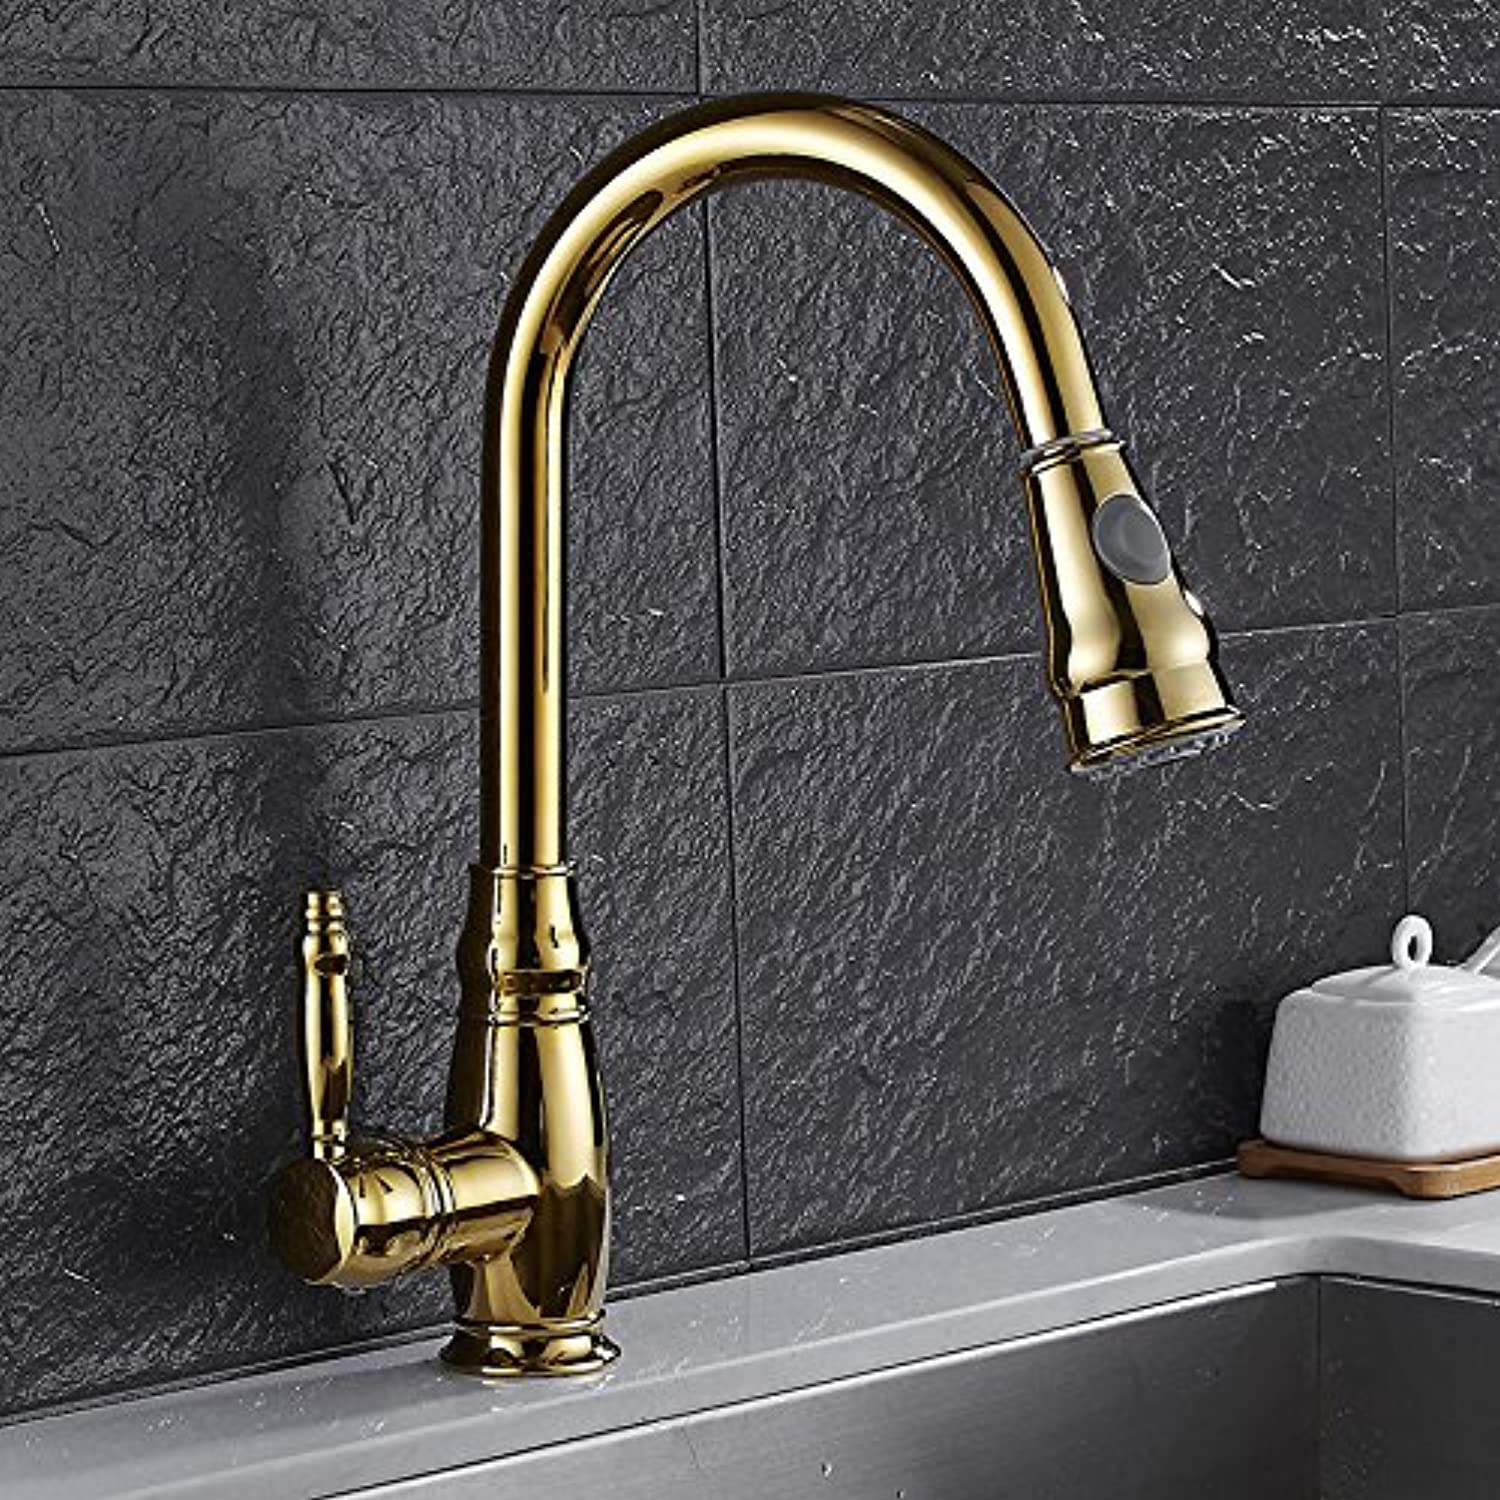 redOOY Faucet Taps Kitchen Hot And Cold Faucet?????Kitchen Hot And Cold Faucet Sink Sink Faucet